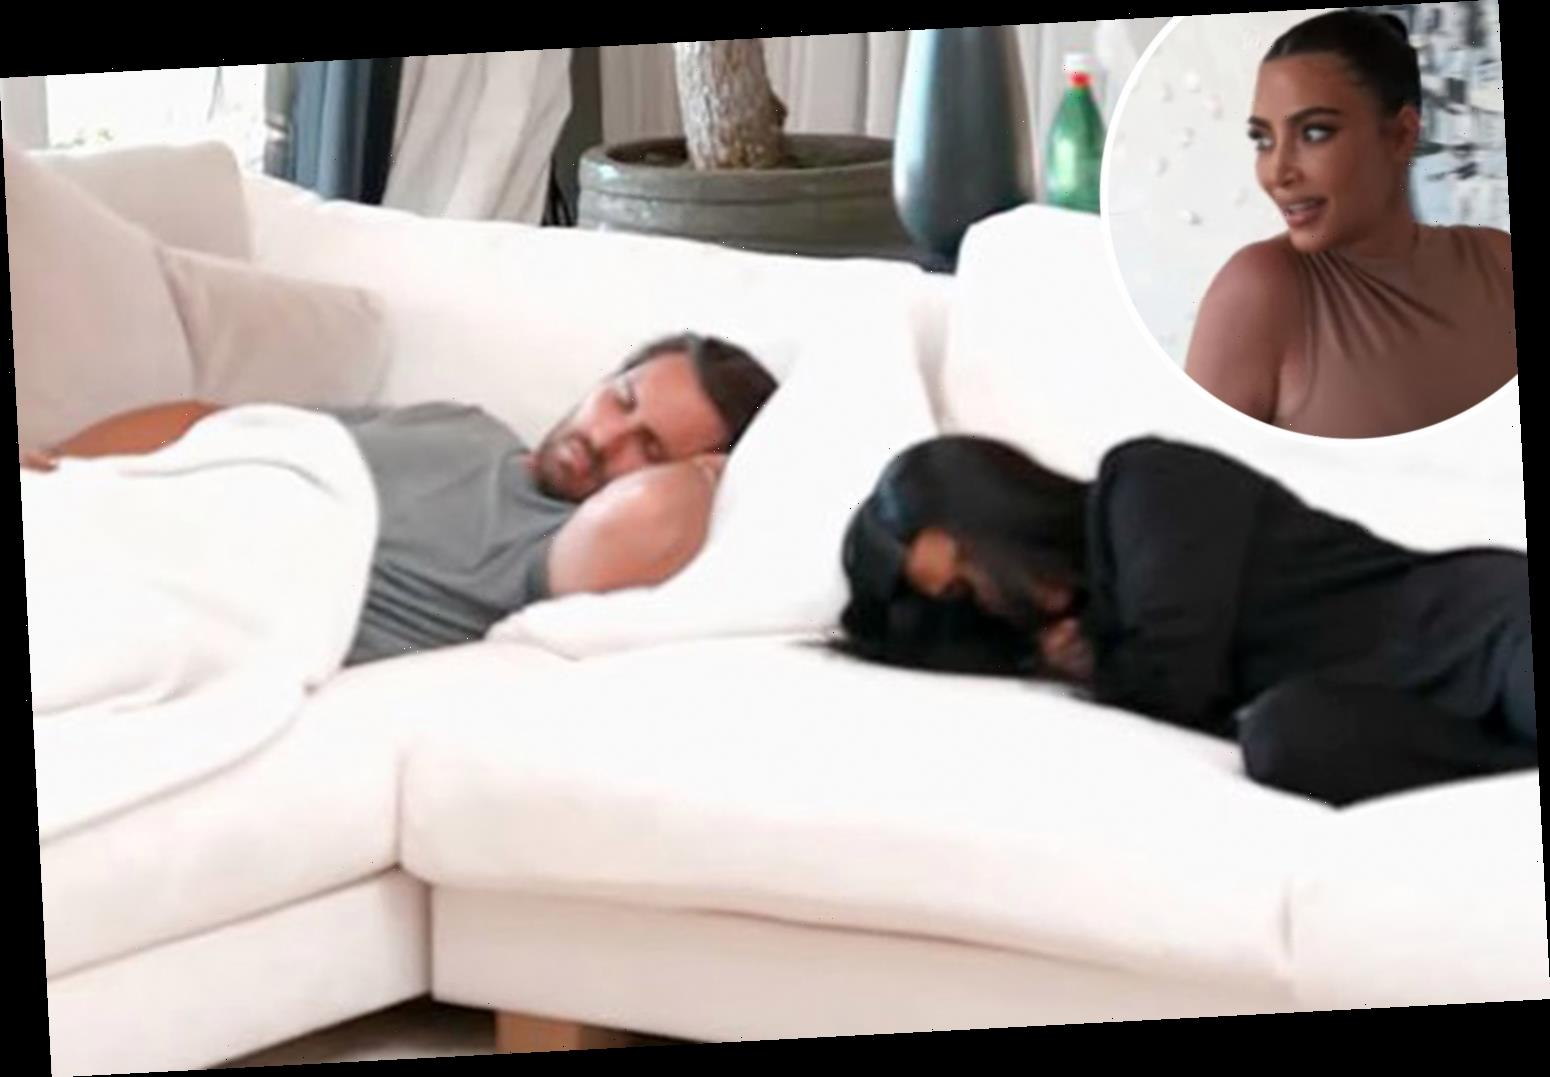 Kourtney Kardashian & Scott Disick caught sleeping together on couch as sisters think they're hooking up in KUWTK clip